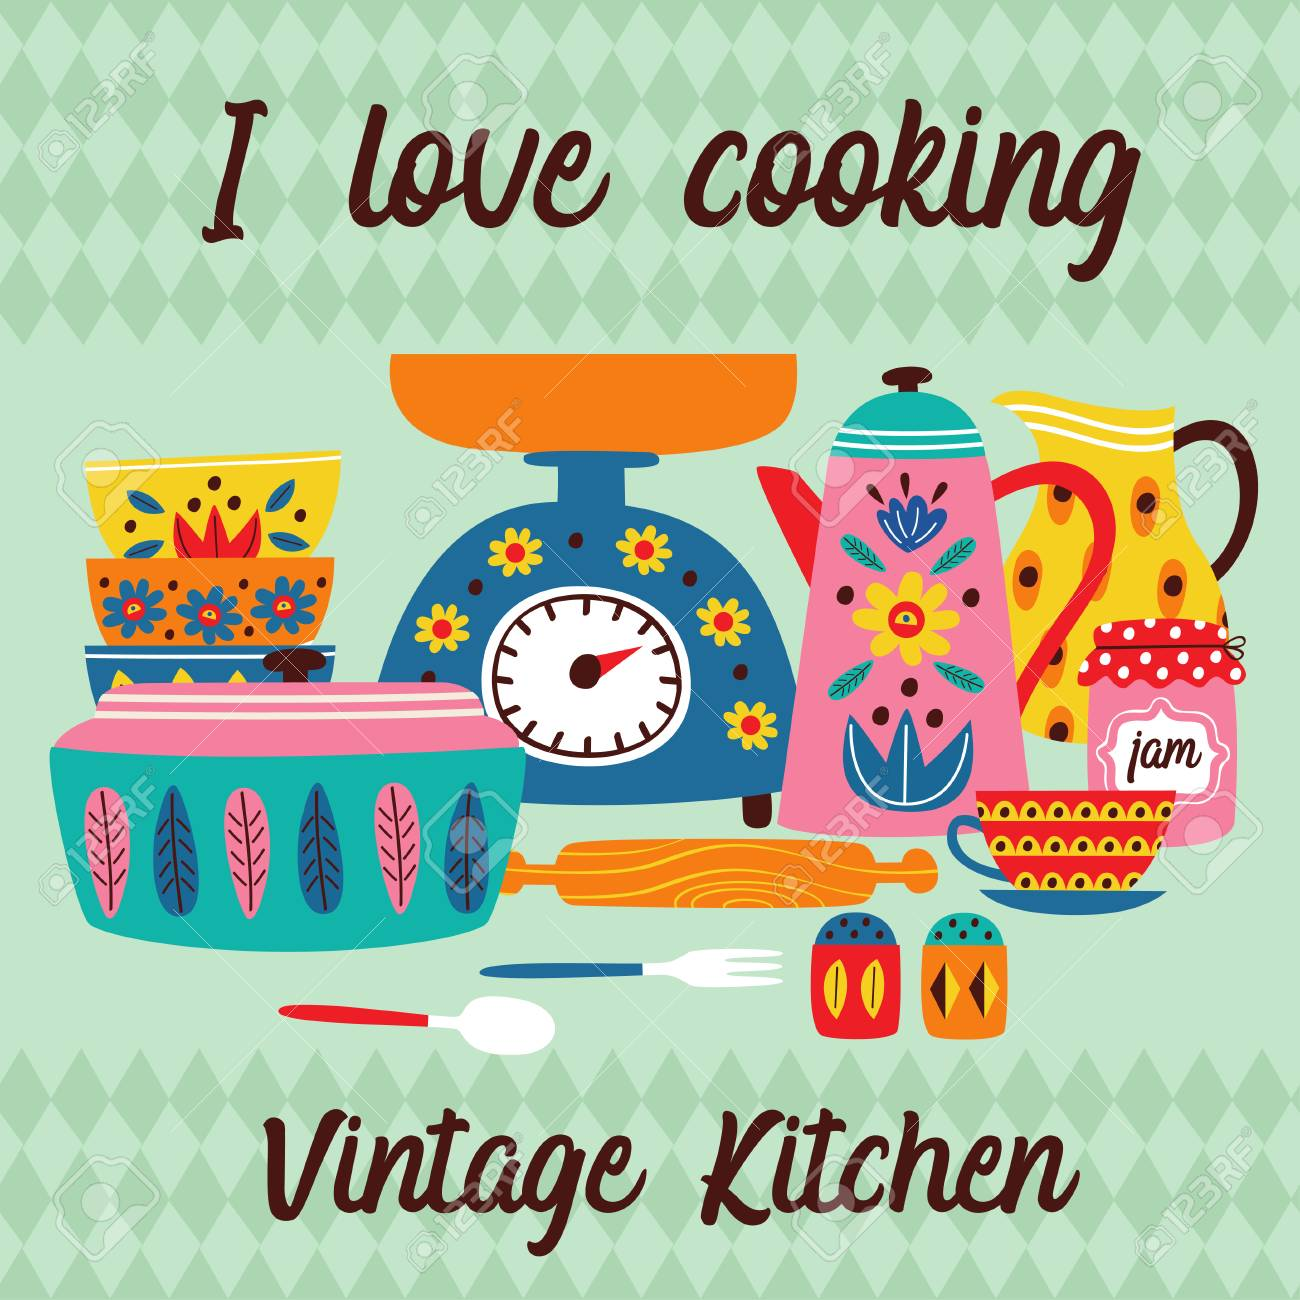 Poster With Vintage Kitchen Illustration Royalty Free Cliparts